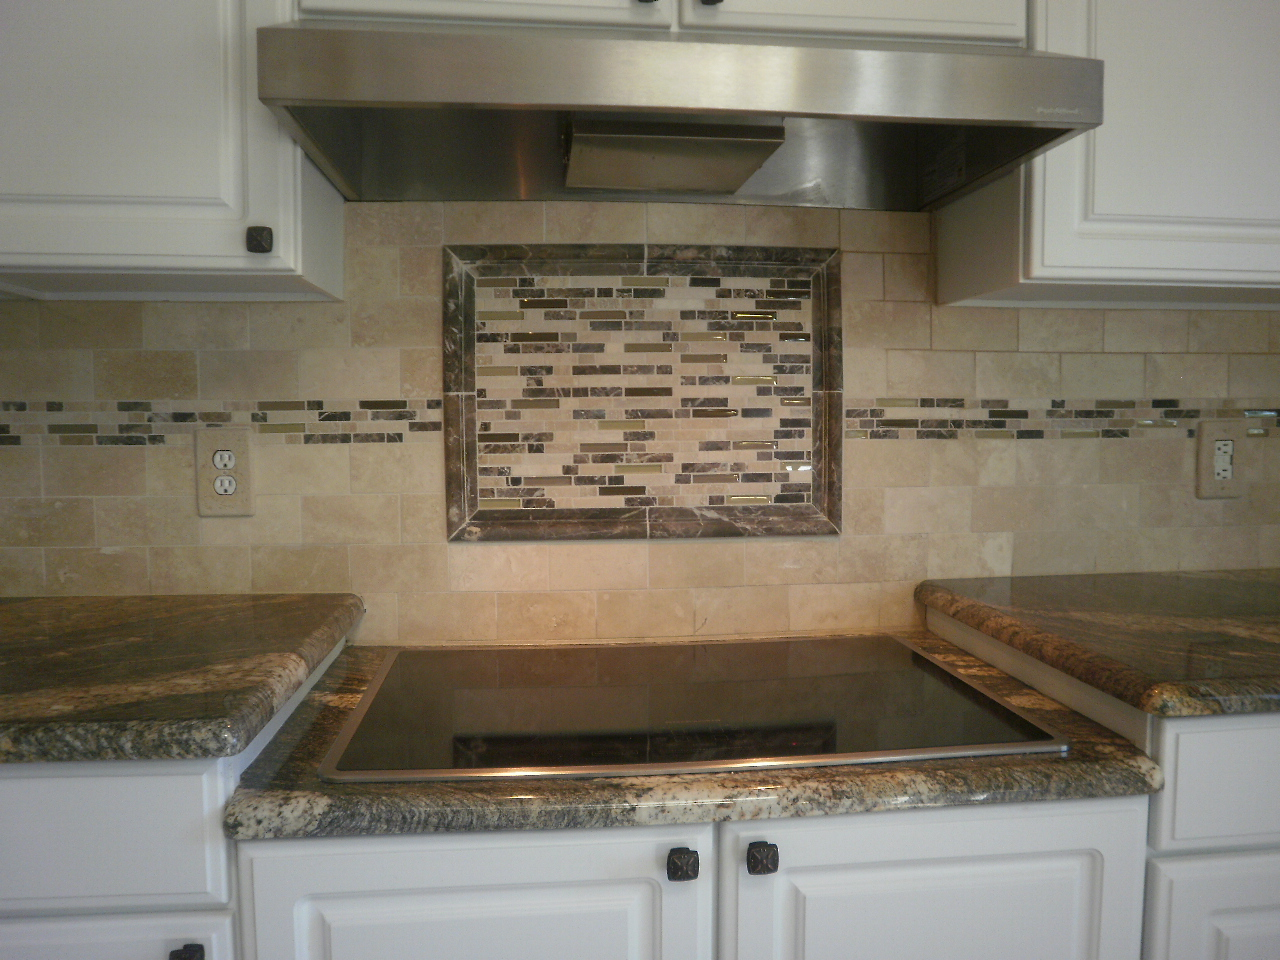 Integrity installations a division of front range backsplash june 2011 - Kitchen design tiles ...